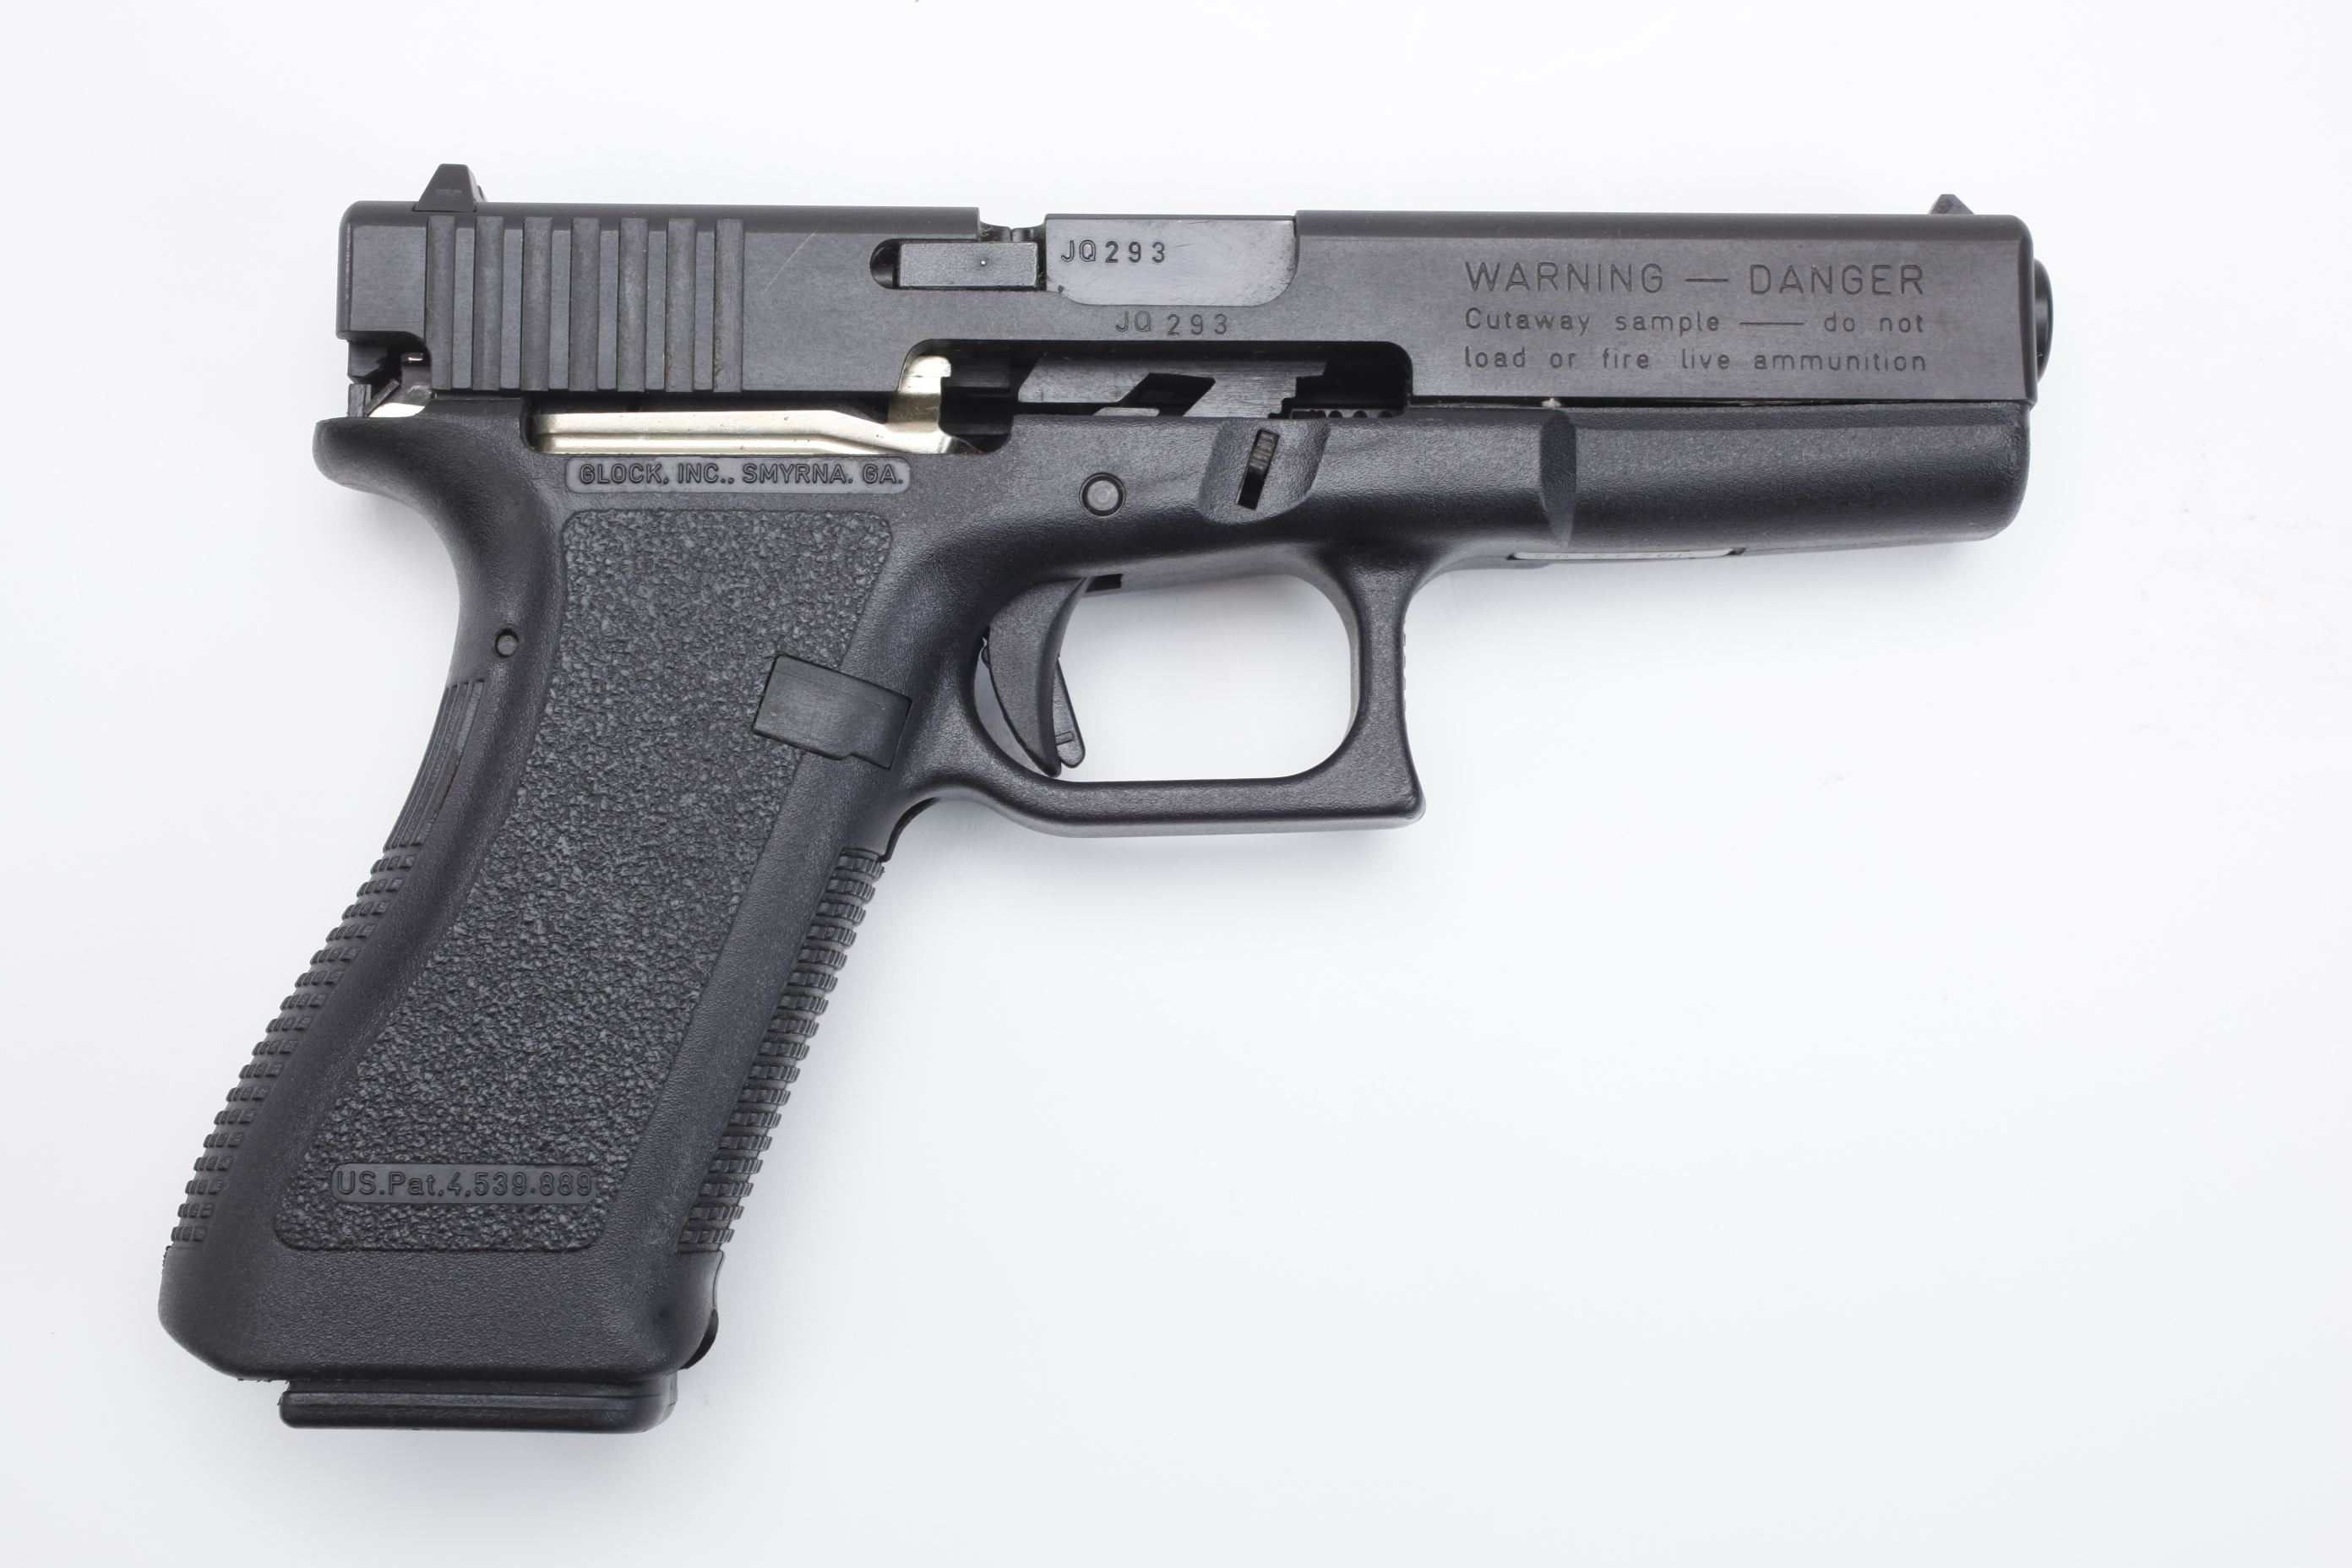 Glock Model 17 Semi Automatic Pistol